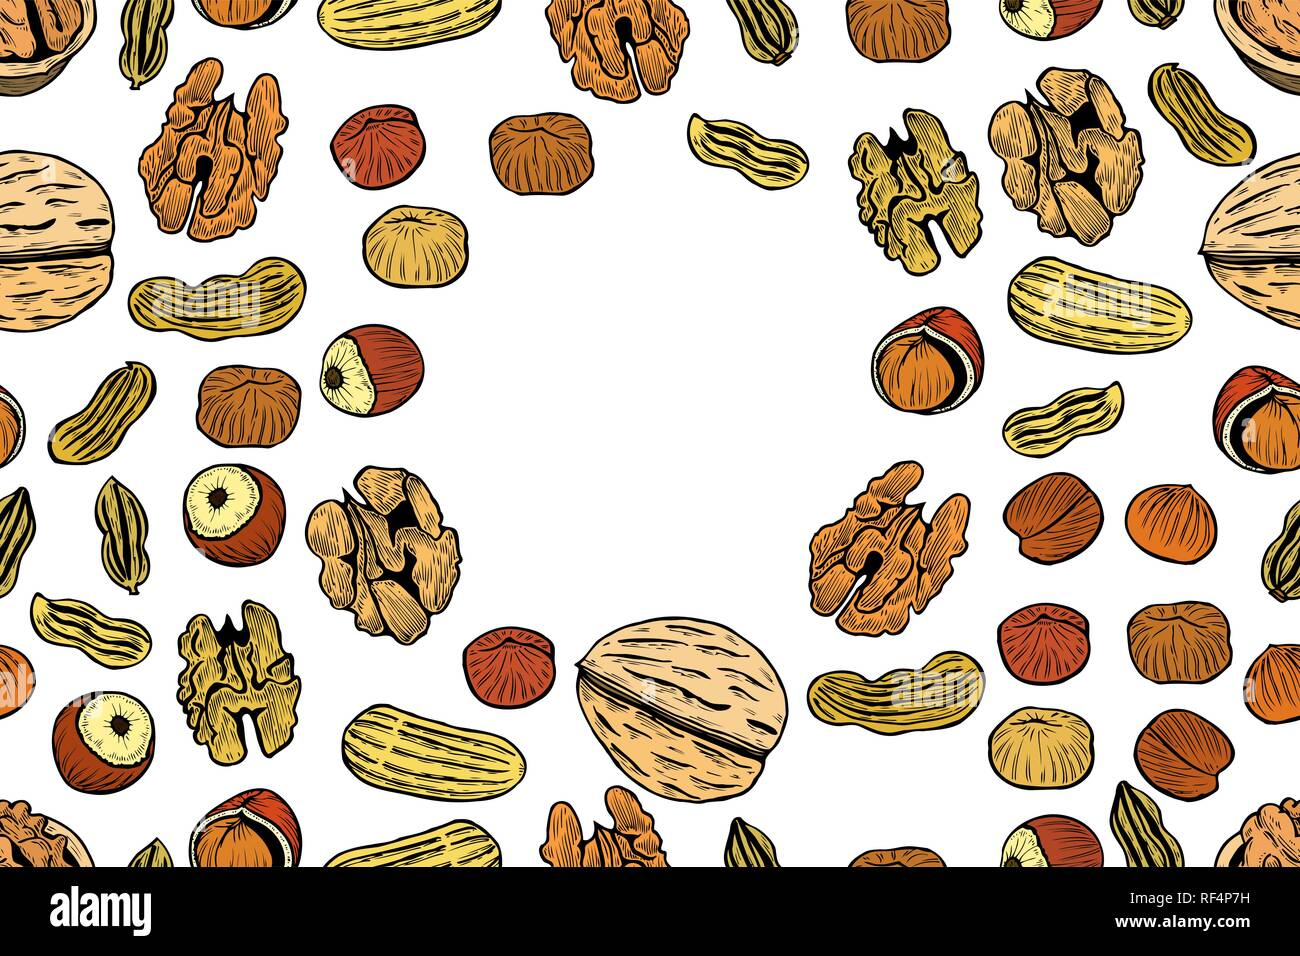 Vector seamless pattern with nuts and seeds. Pistachios, brasil nuts, pecan, hazelnut, nutmeg, cashew background. Hand drawn elements in sketch style. Stock Vector